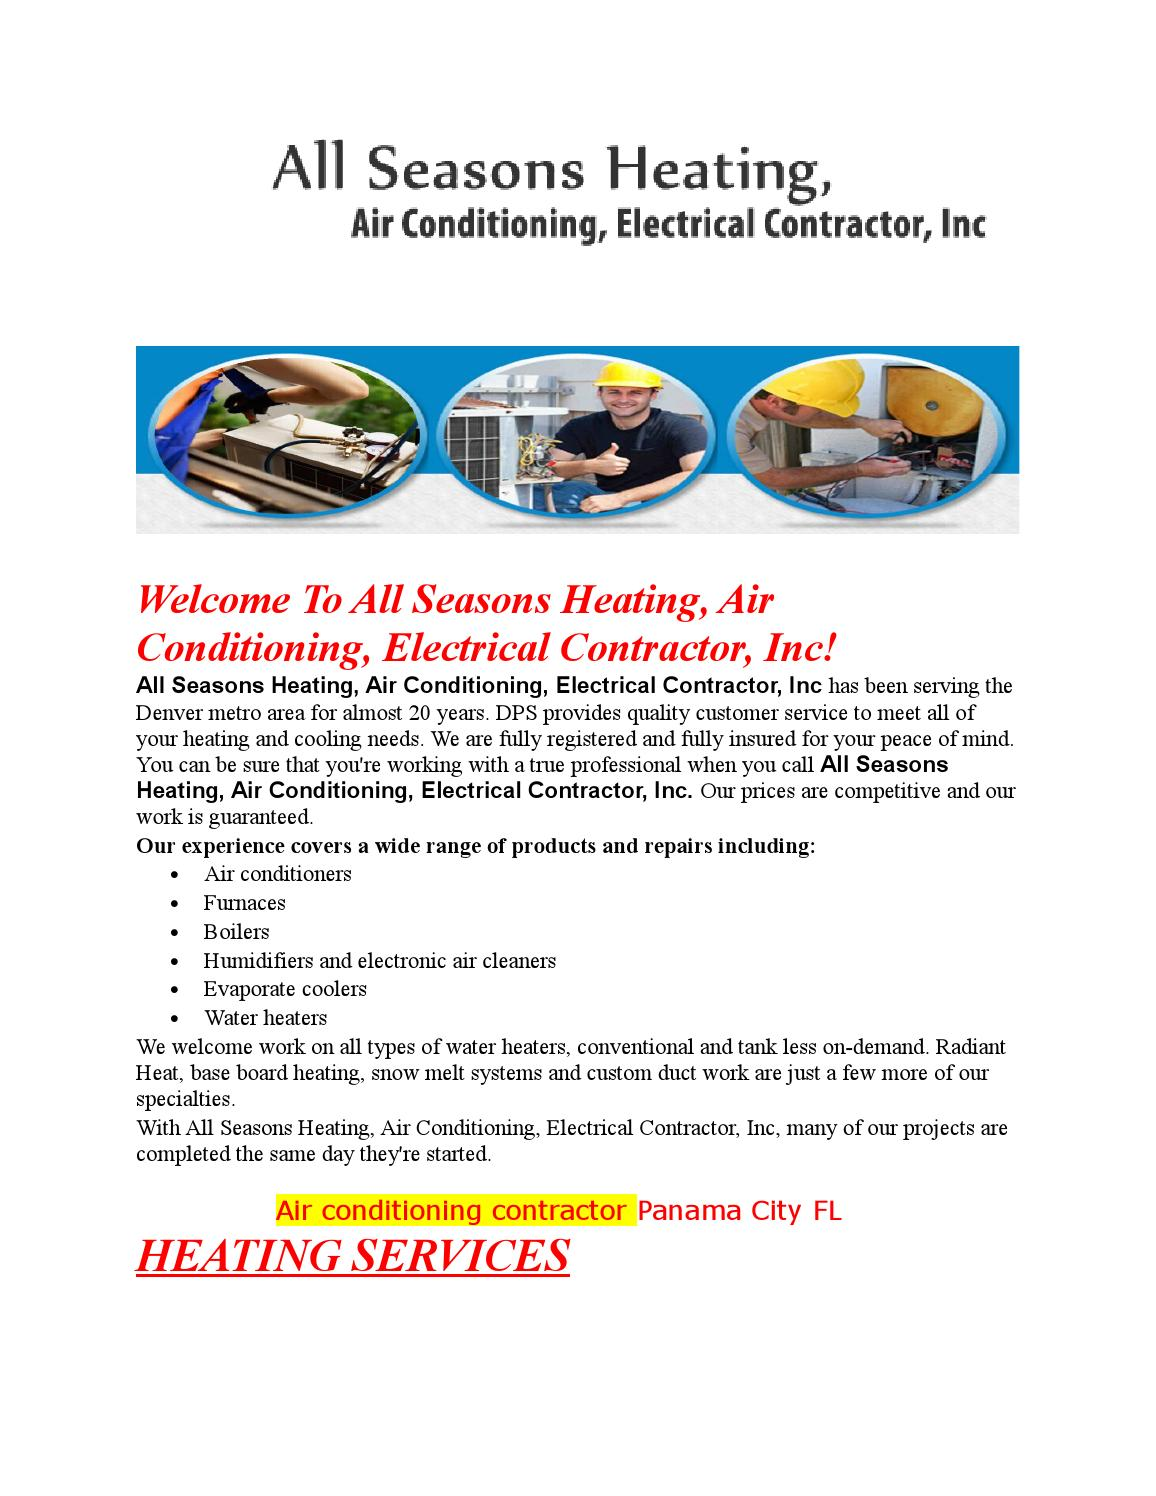 Air Conditioning Electrical Hvac And Heating Repair Contractor Denver Services Replacing A Thermostat Meanings Of Panama City Fl By Bettsconcrete Issuu